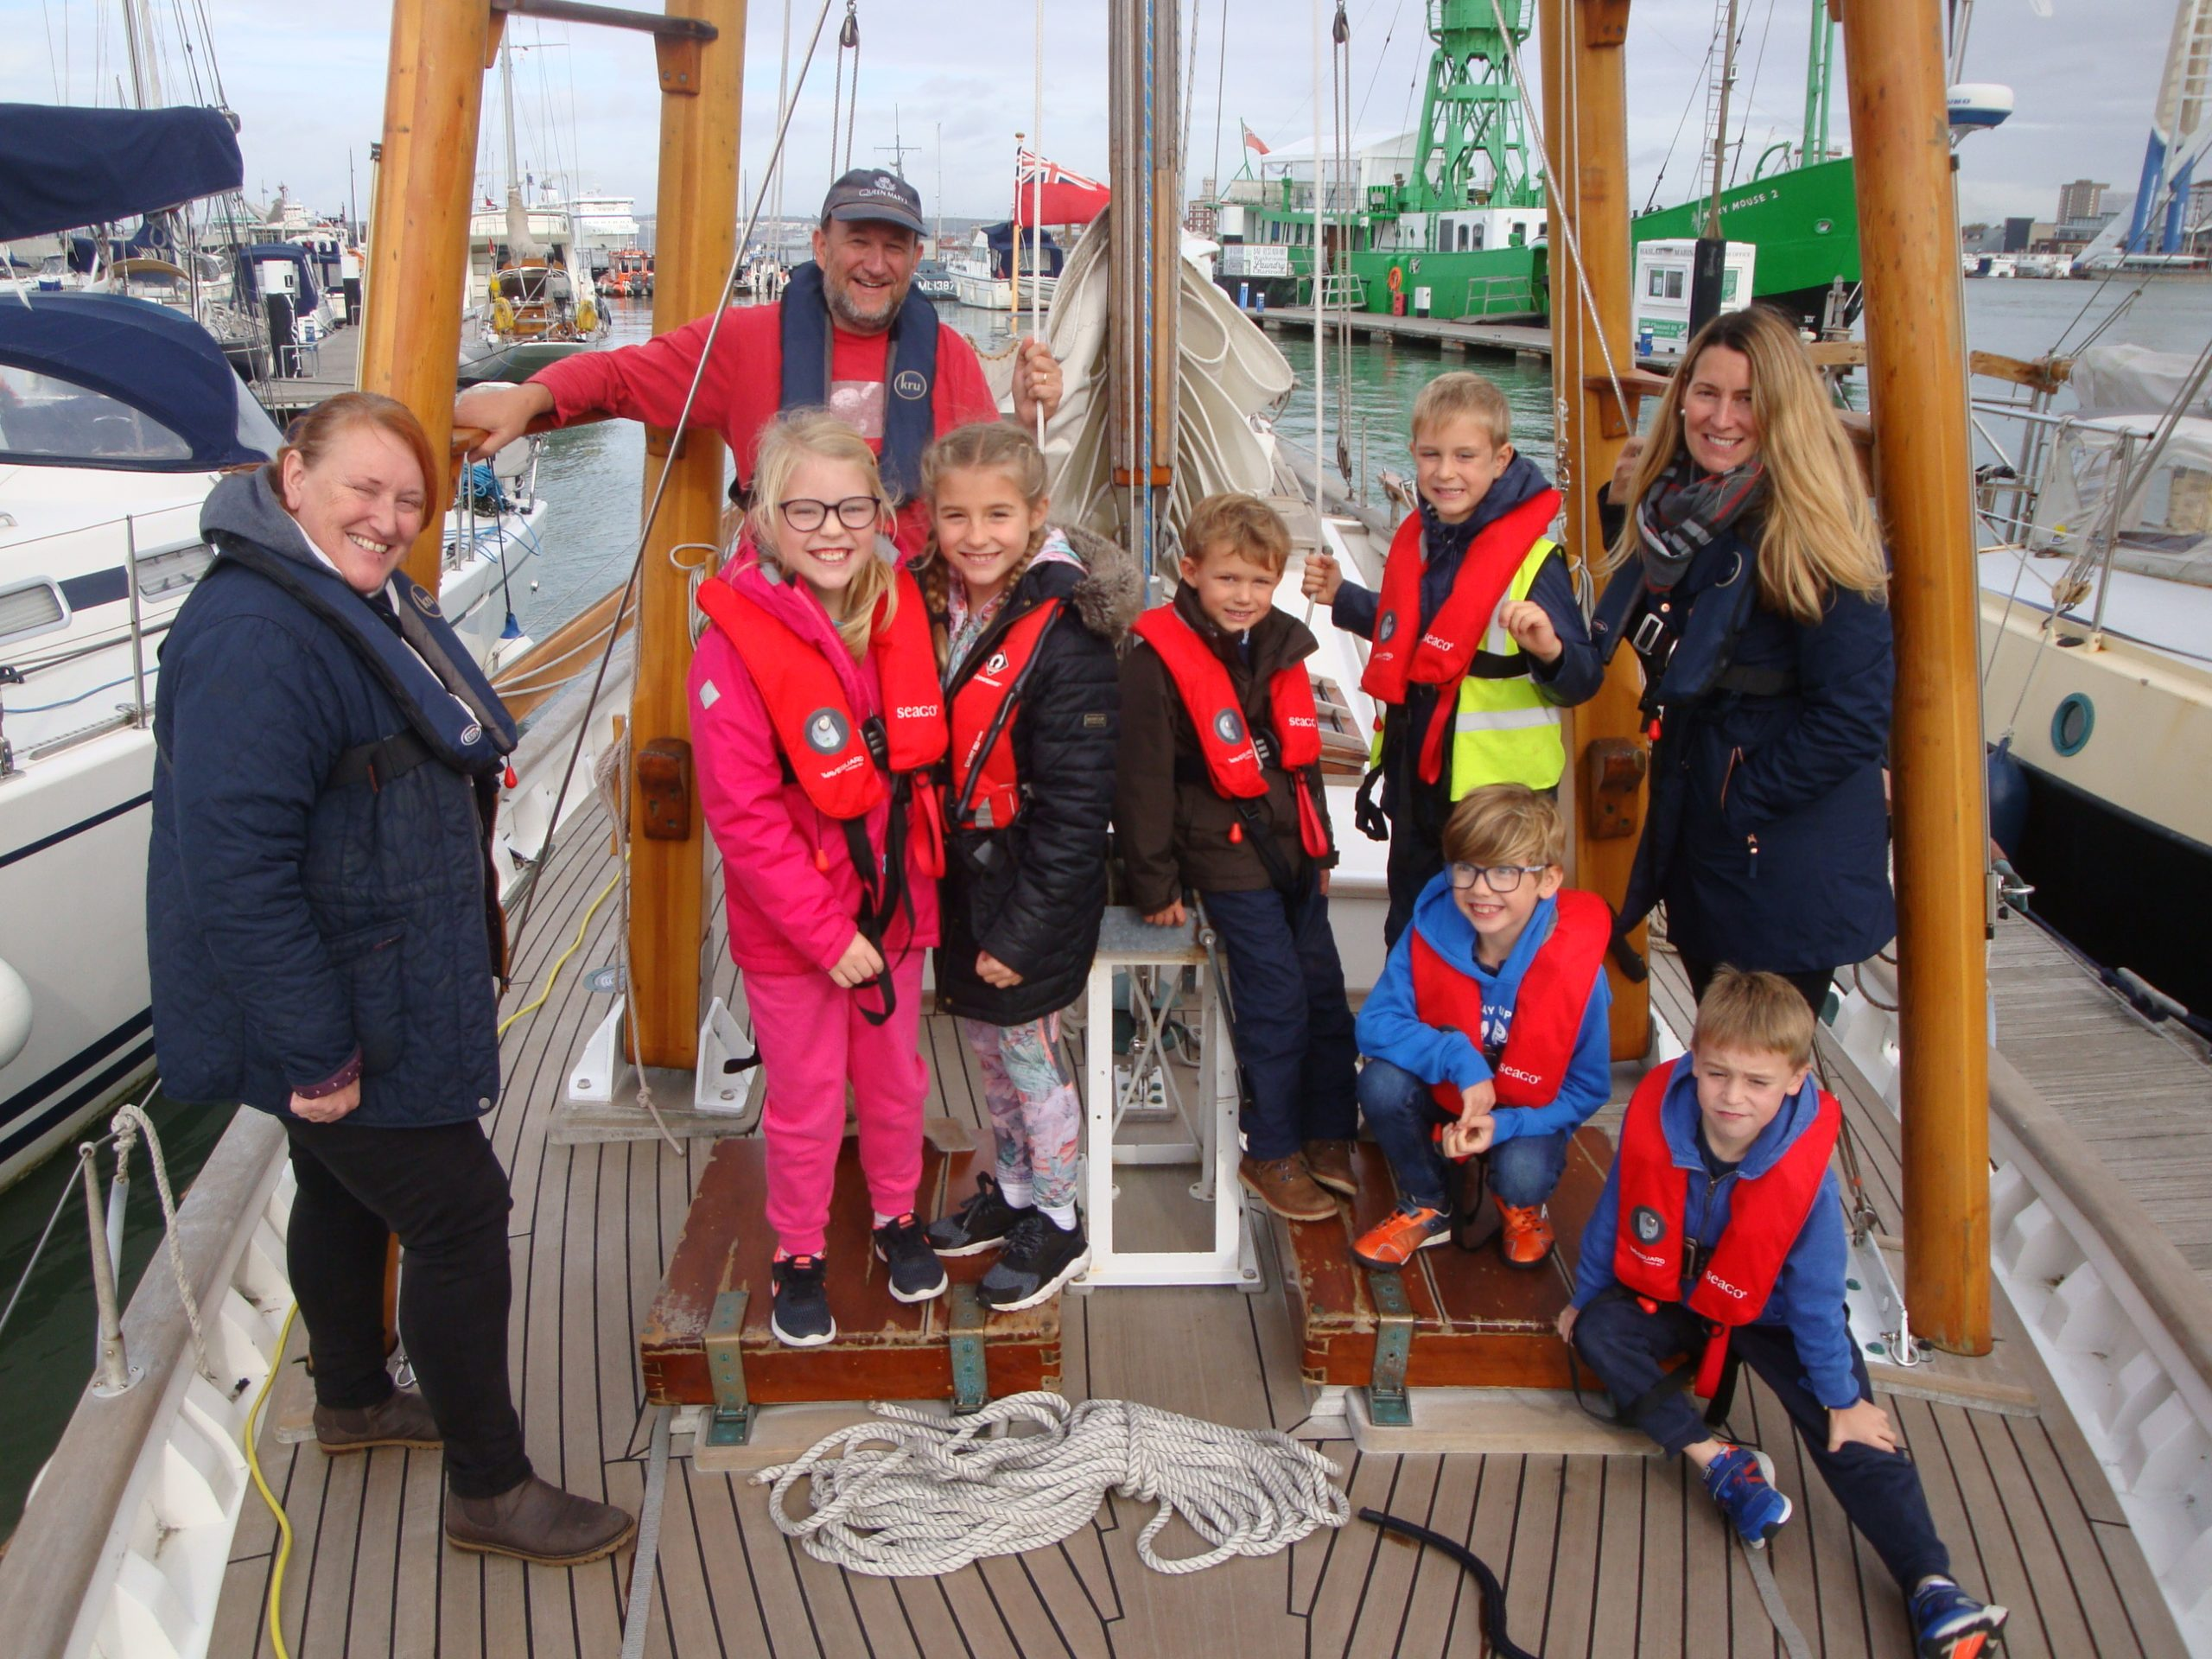 Halcyon and the Boleh Trust will work together to provide young people with an inspiring introduction to sailing